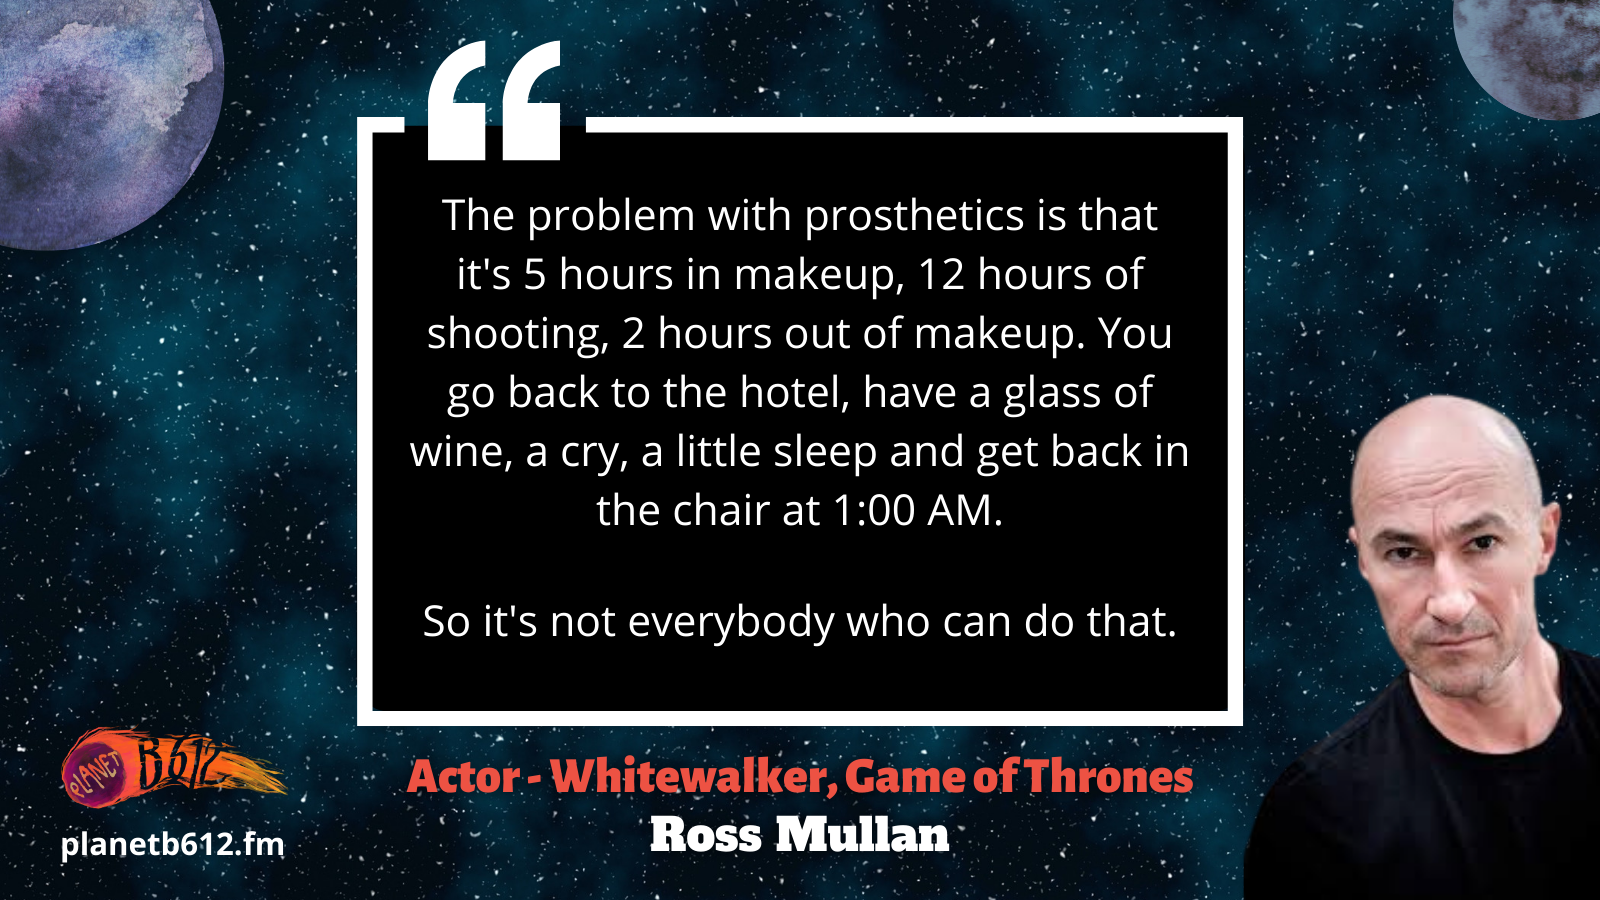 Ross Mullan talks about the reality of having to wear a ton of prosthetics for filming. Not everyone can pull that off.